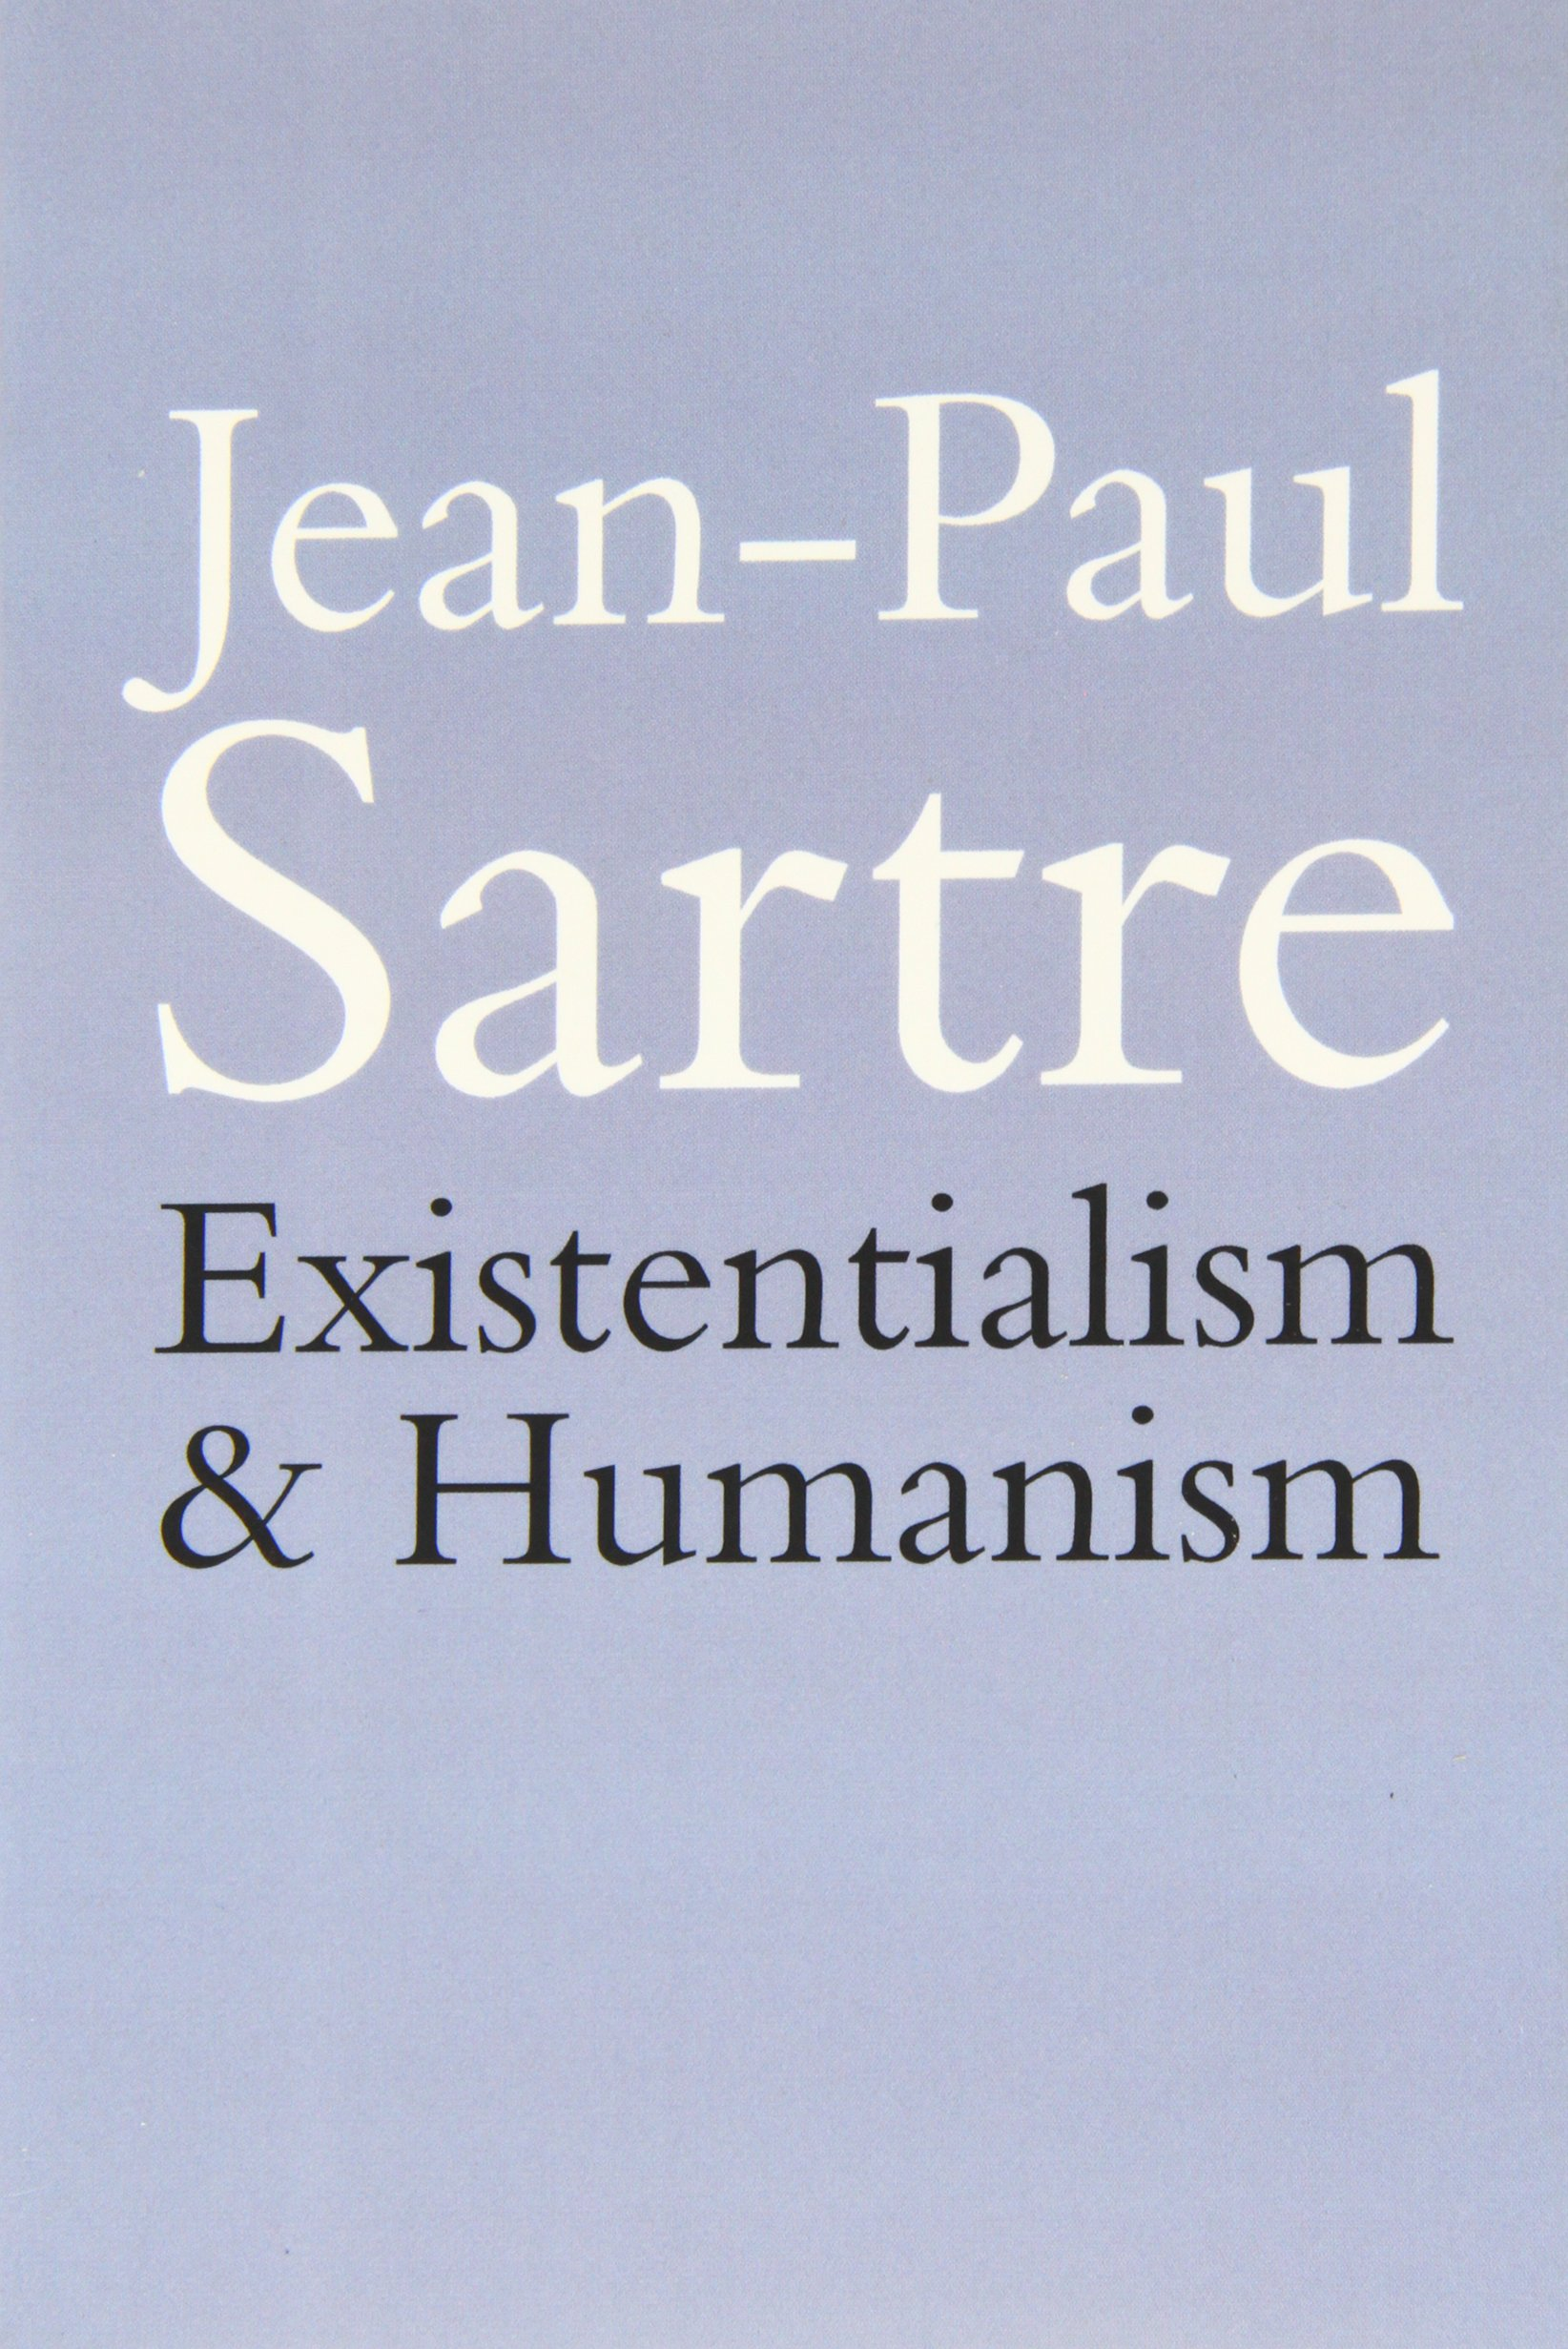 existentialism and humanism co uk jean paul sartre existentialism and humanism co uk jean paul sartre 9780413776396 books